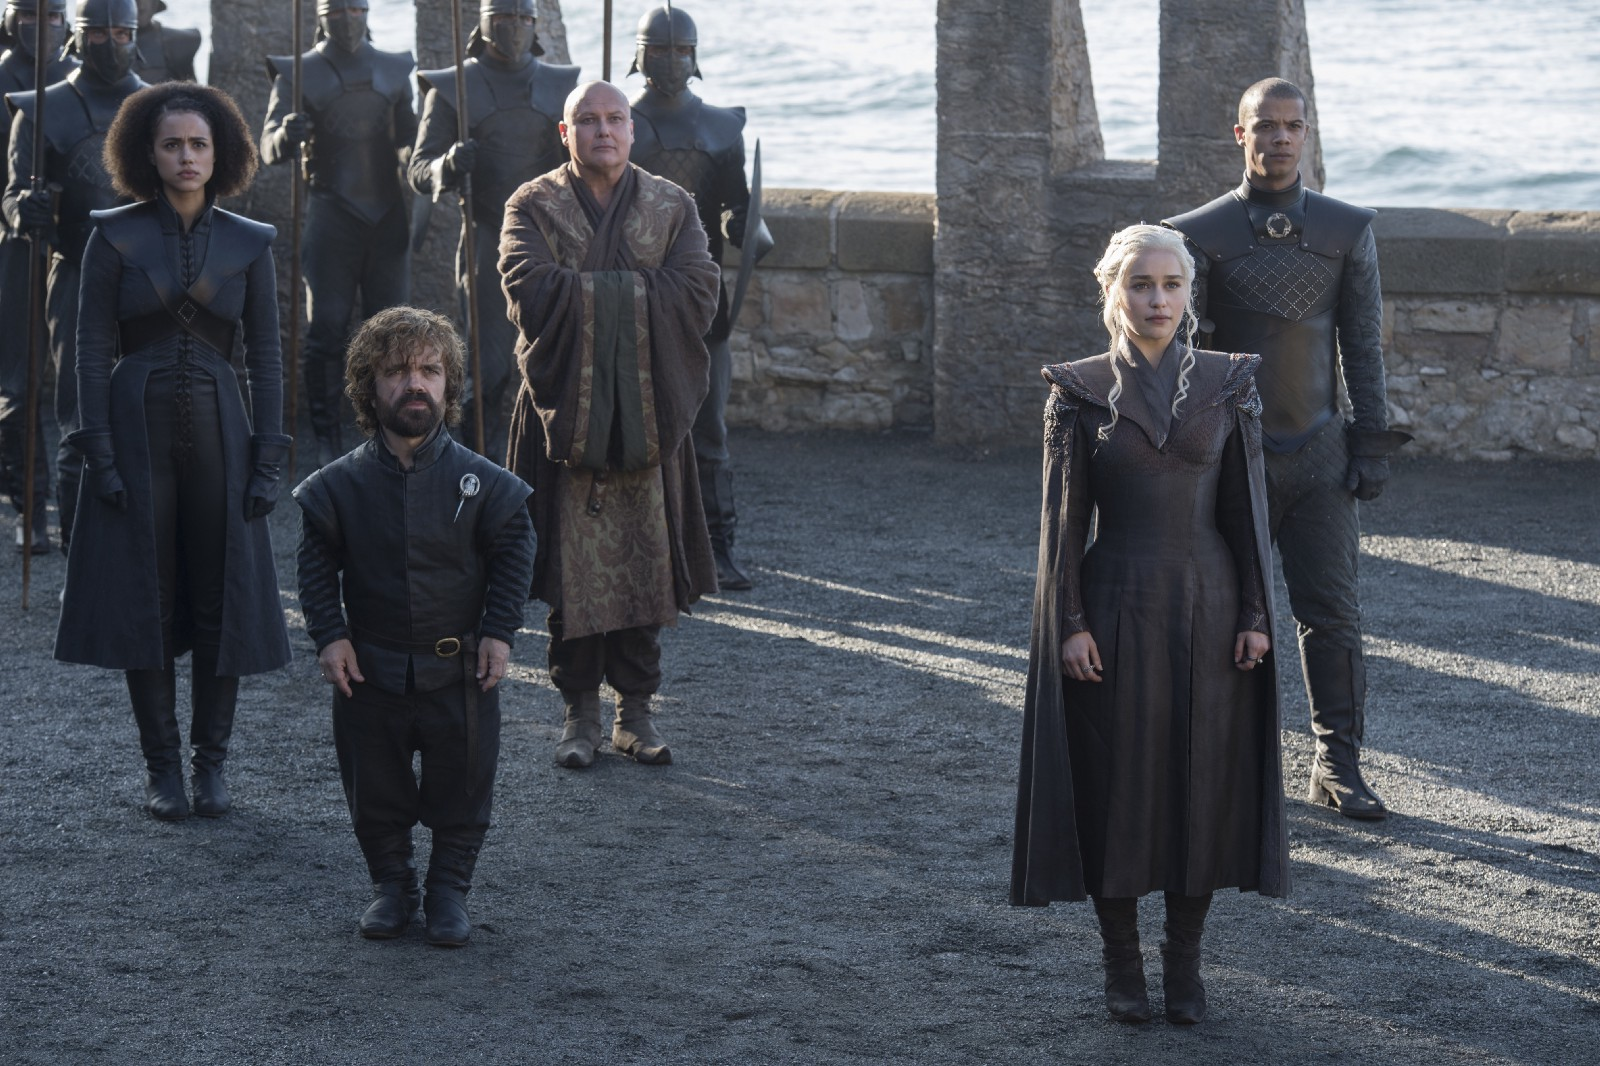 New Images from 'Game of Thrones' Season 7